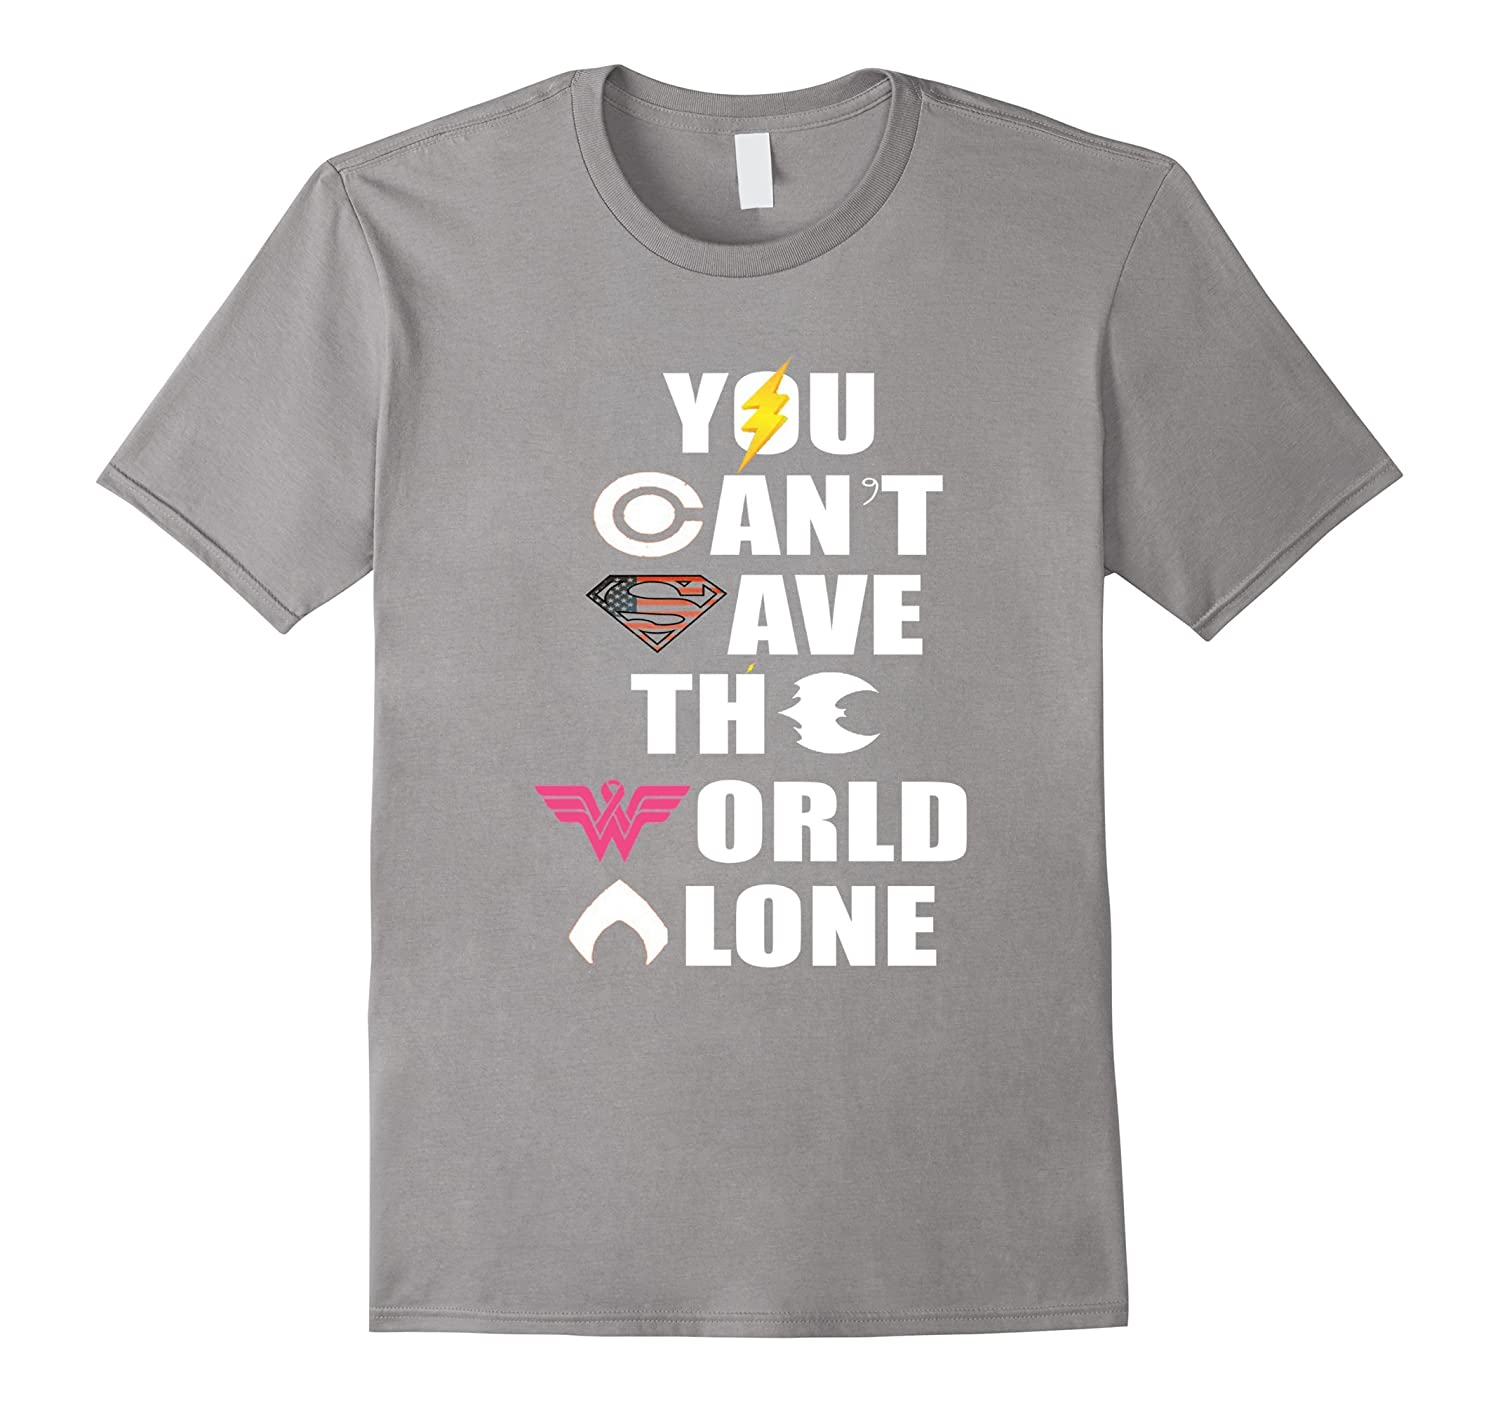 YOU CAN'T SAVE THE WORLD ALONE SHIRTs, Tshirts family shirt-BN